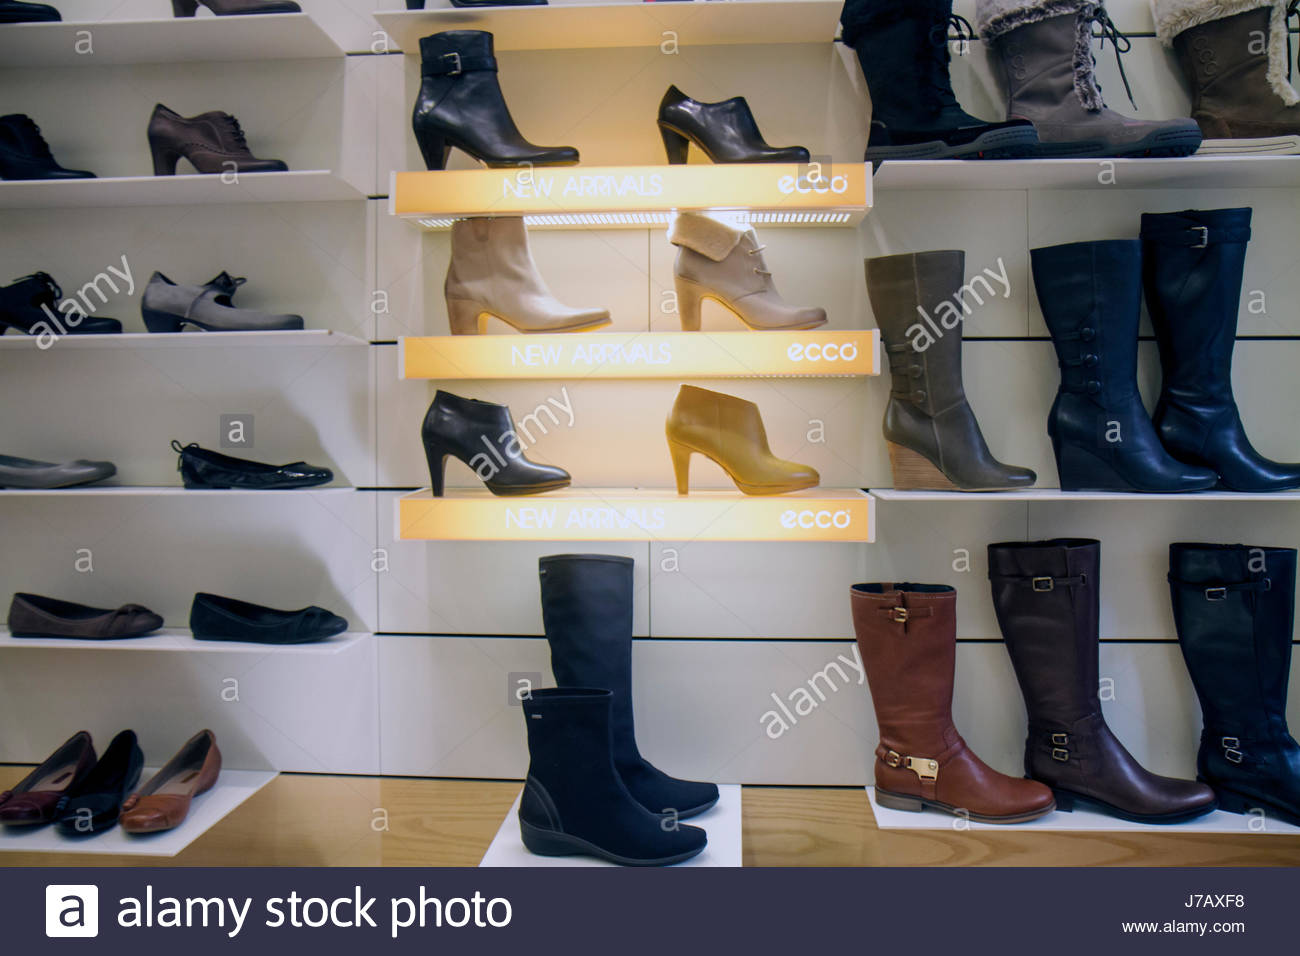 Images Ecco Store amp; Alamy Photos 0wxX6fqzR